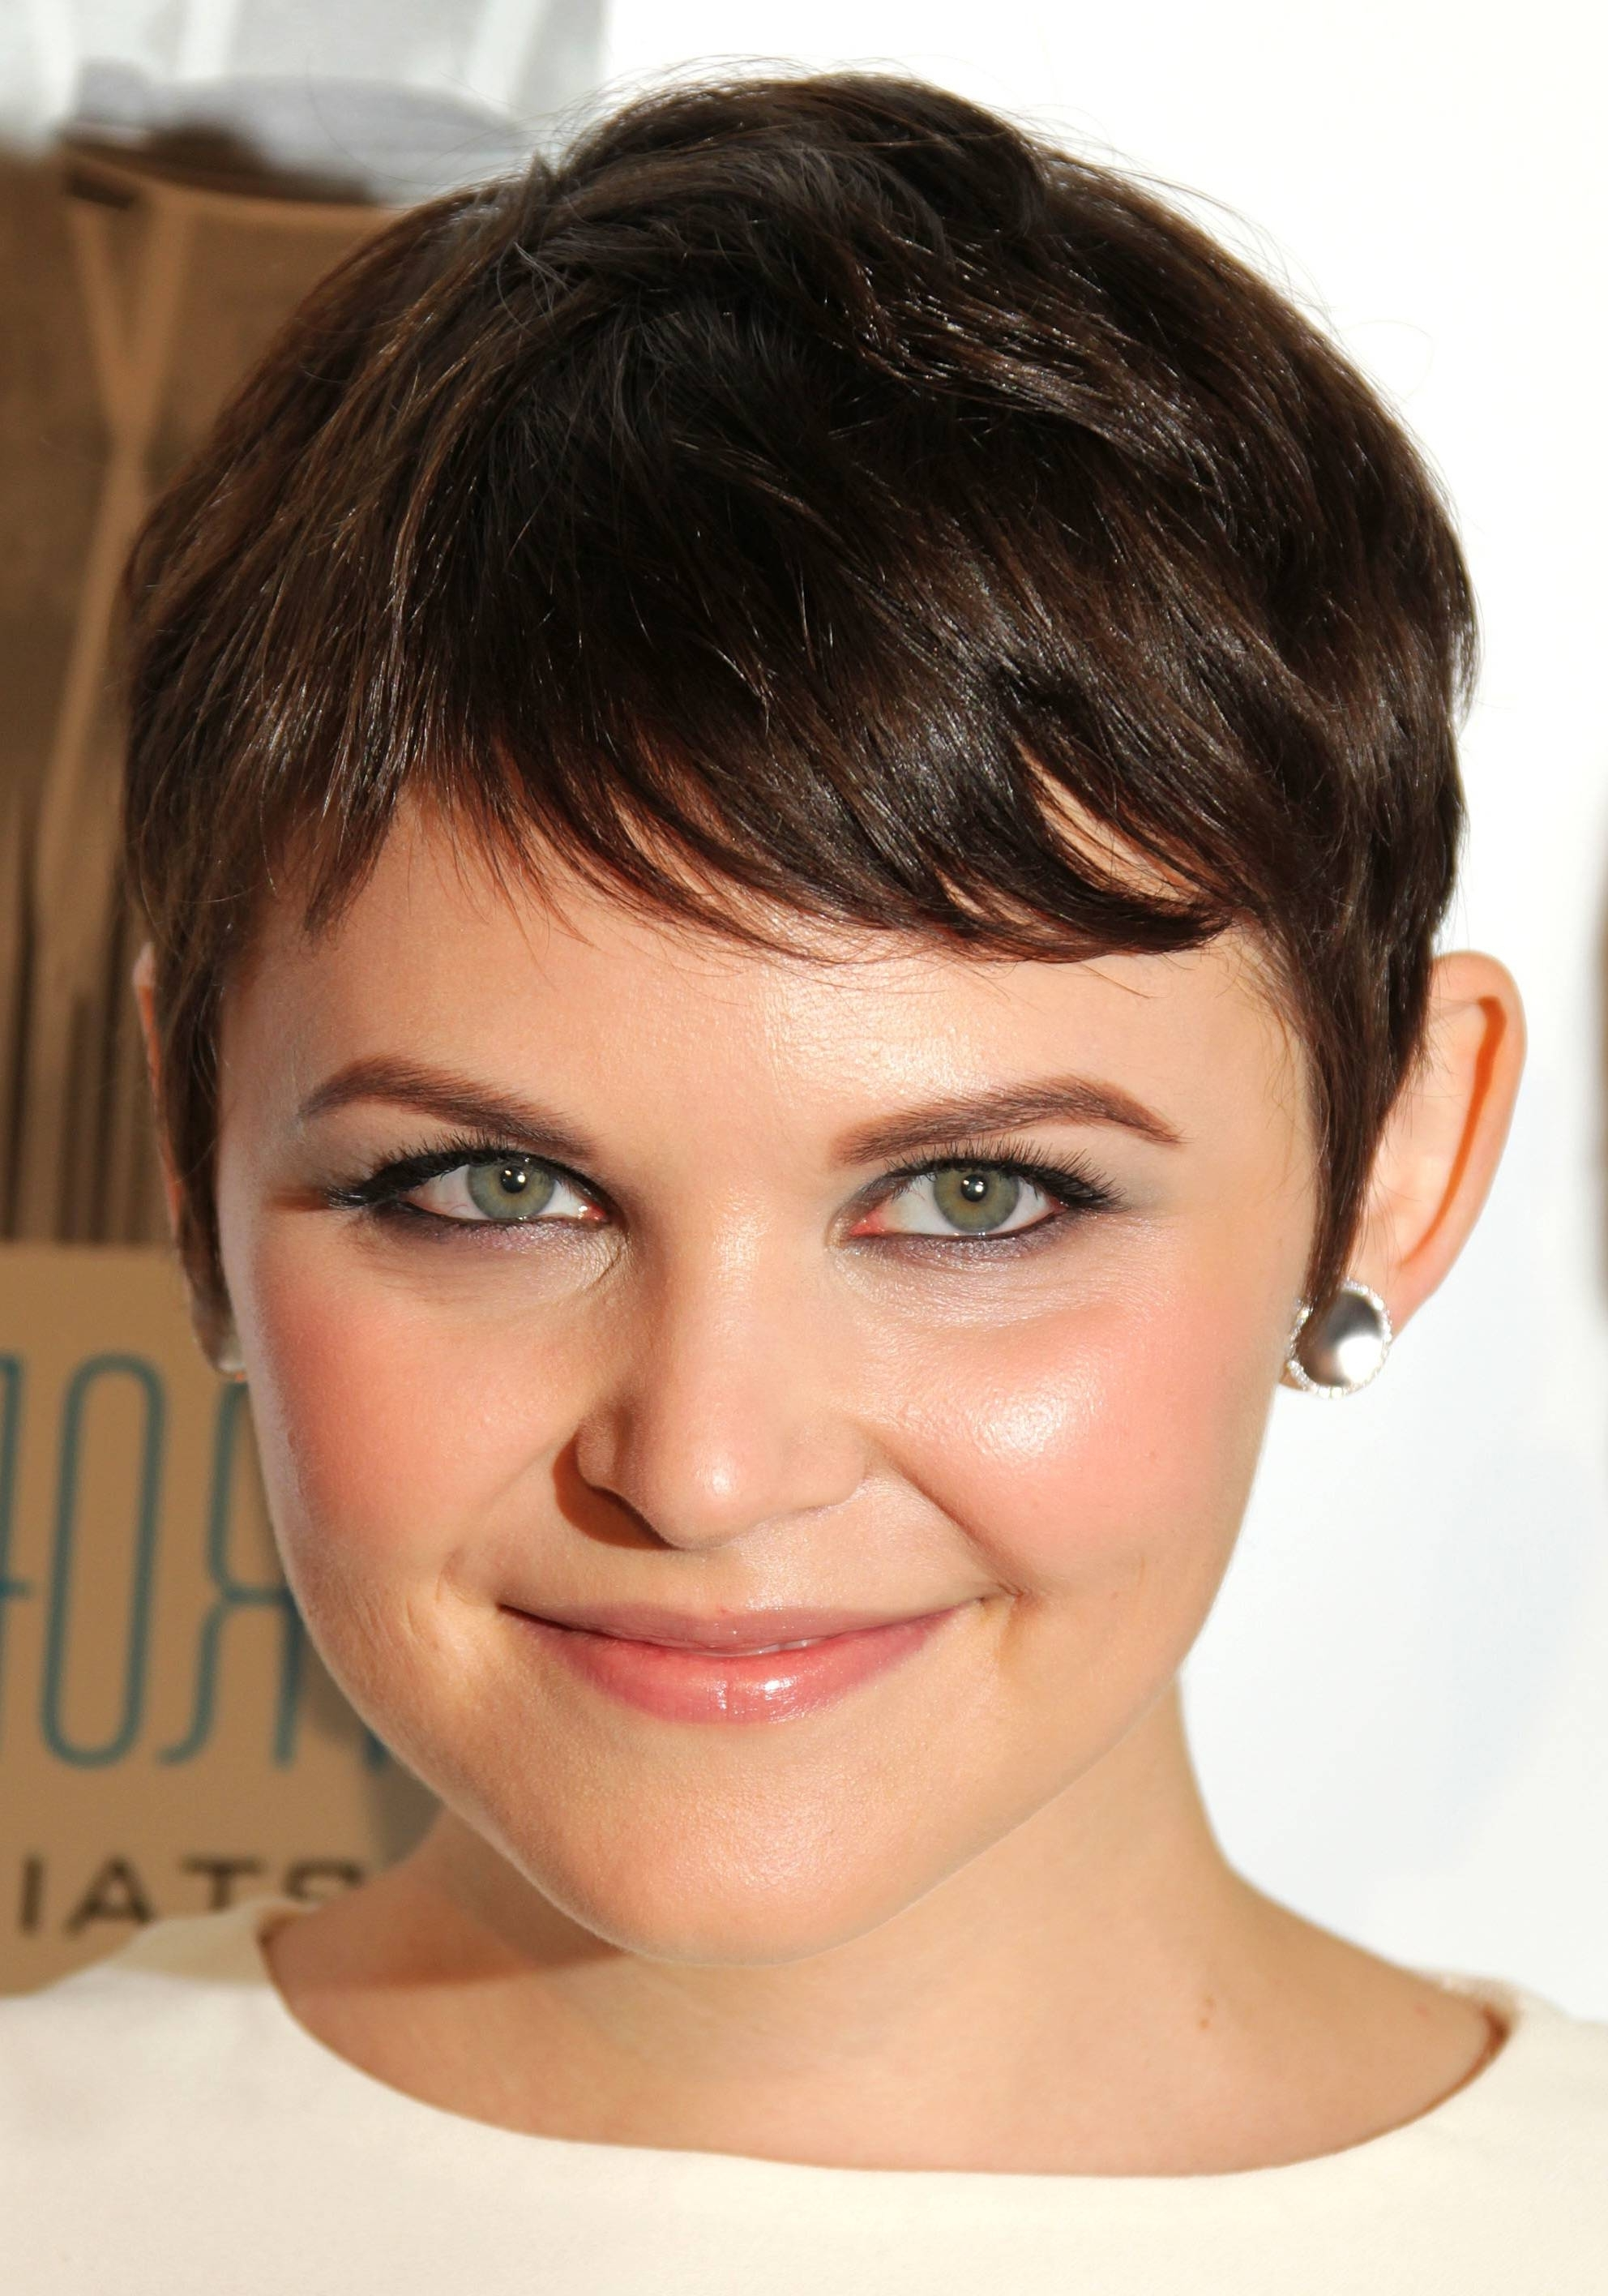 Pictures Of Hairstyles For Fine Thin Hair Celebrities Pixie Inside 2018 Pixie Hairstyles For Thin Hair (View 2 of 15)